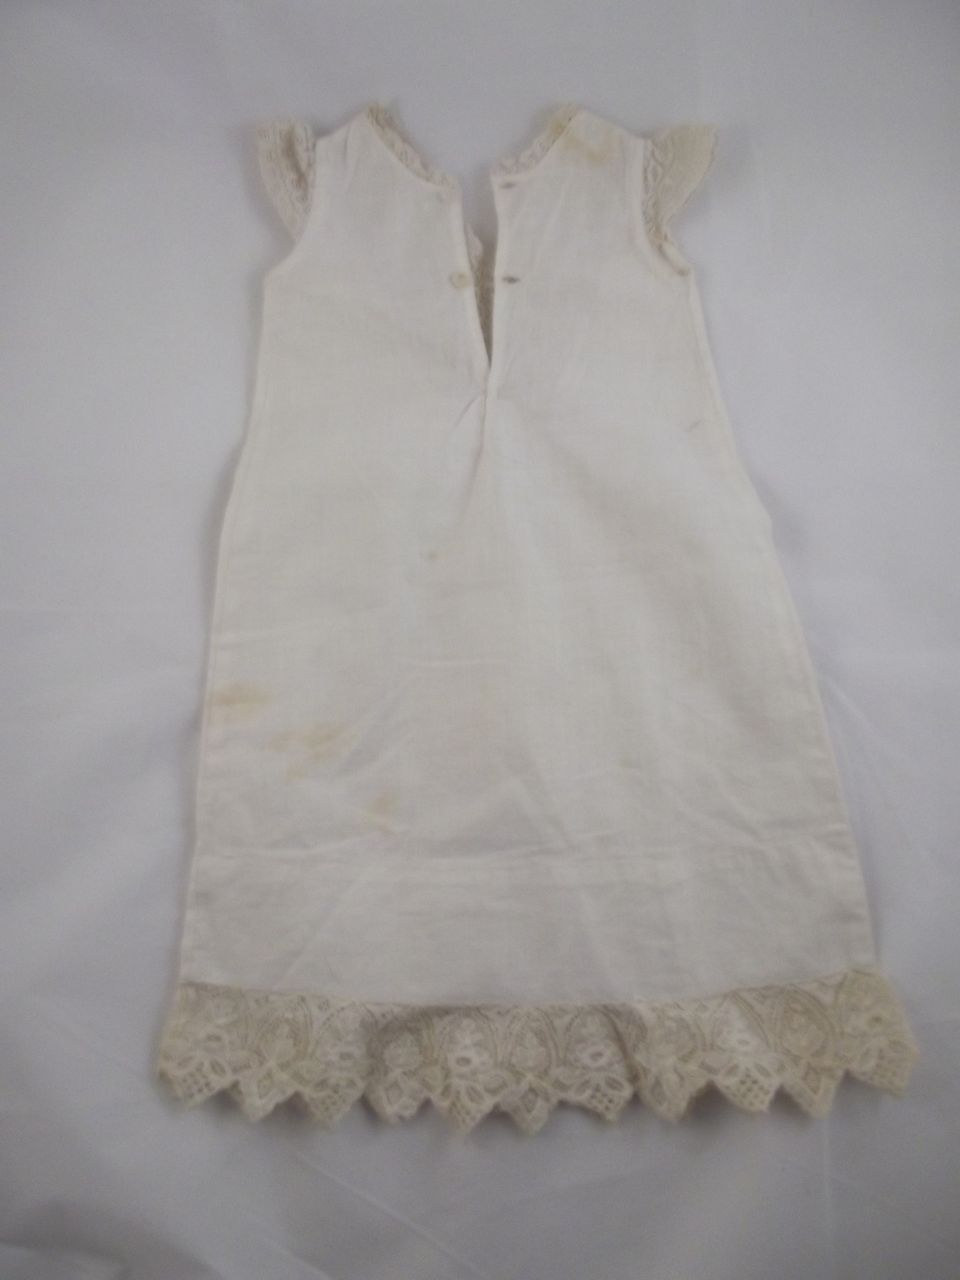 Baby or Doll Nightgown With Fabulous Lace